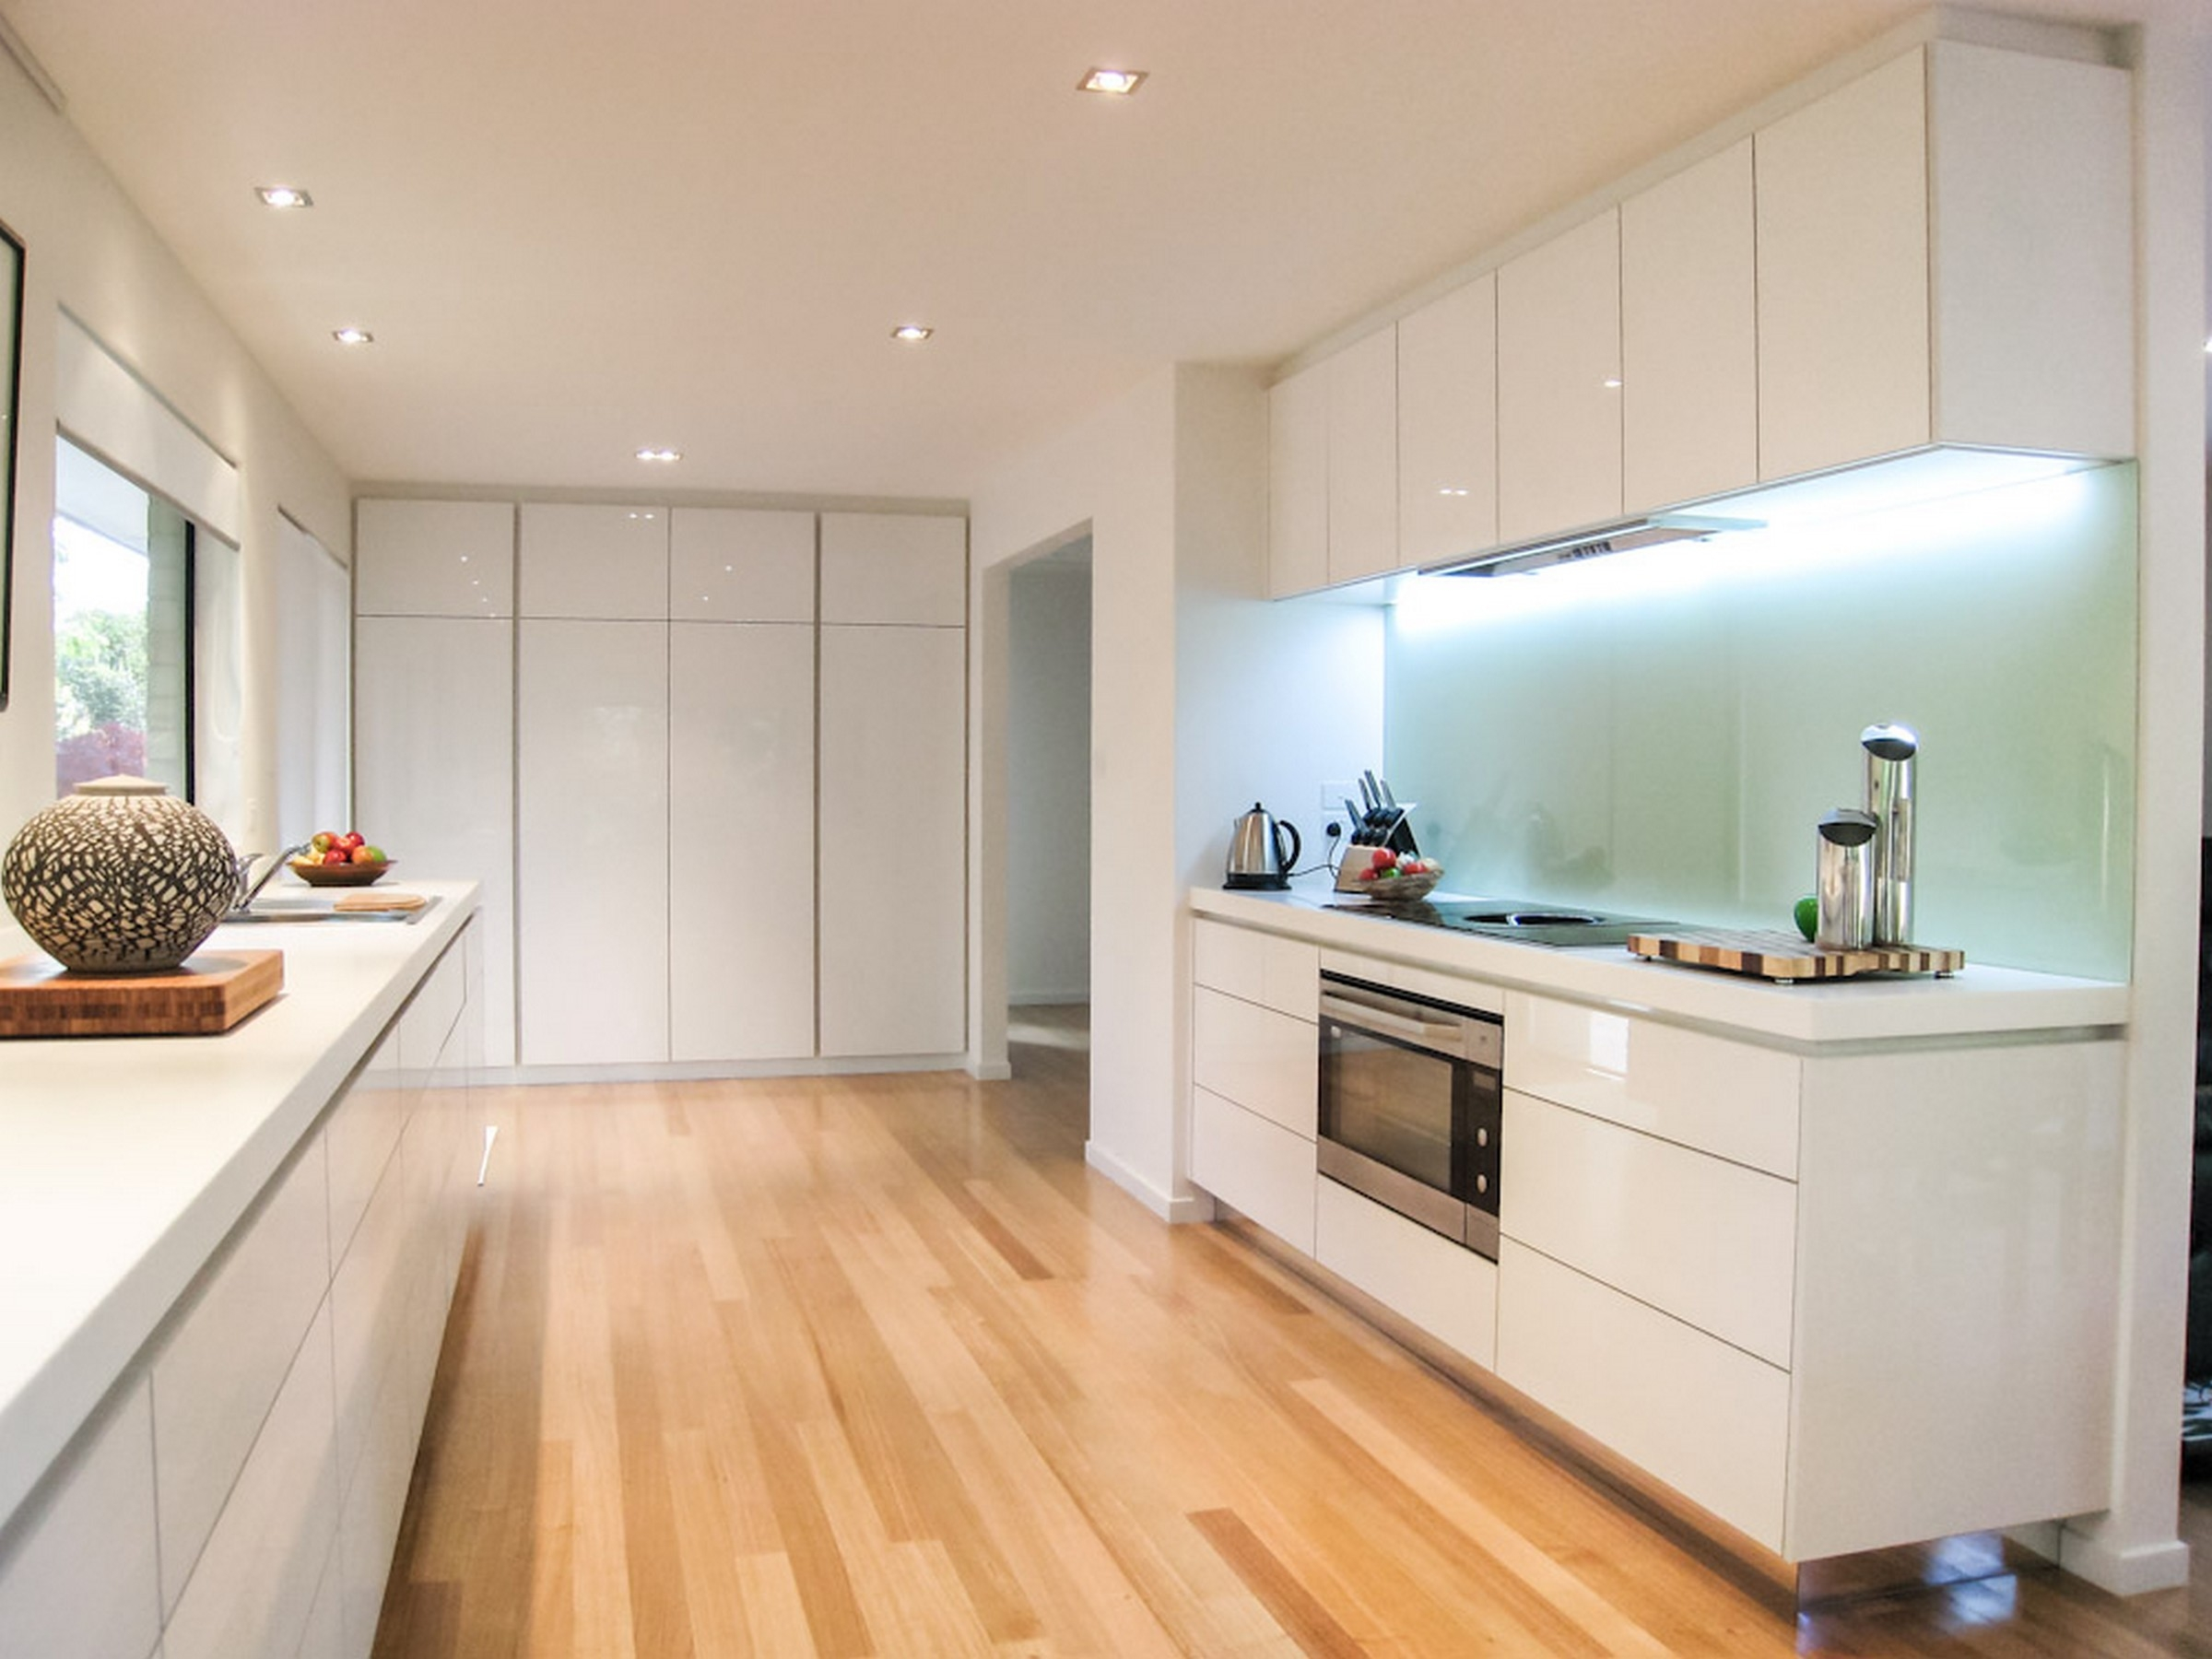 White Kitchen Cabinets Without Handles